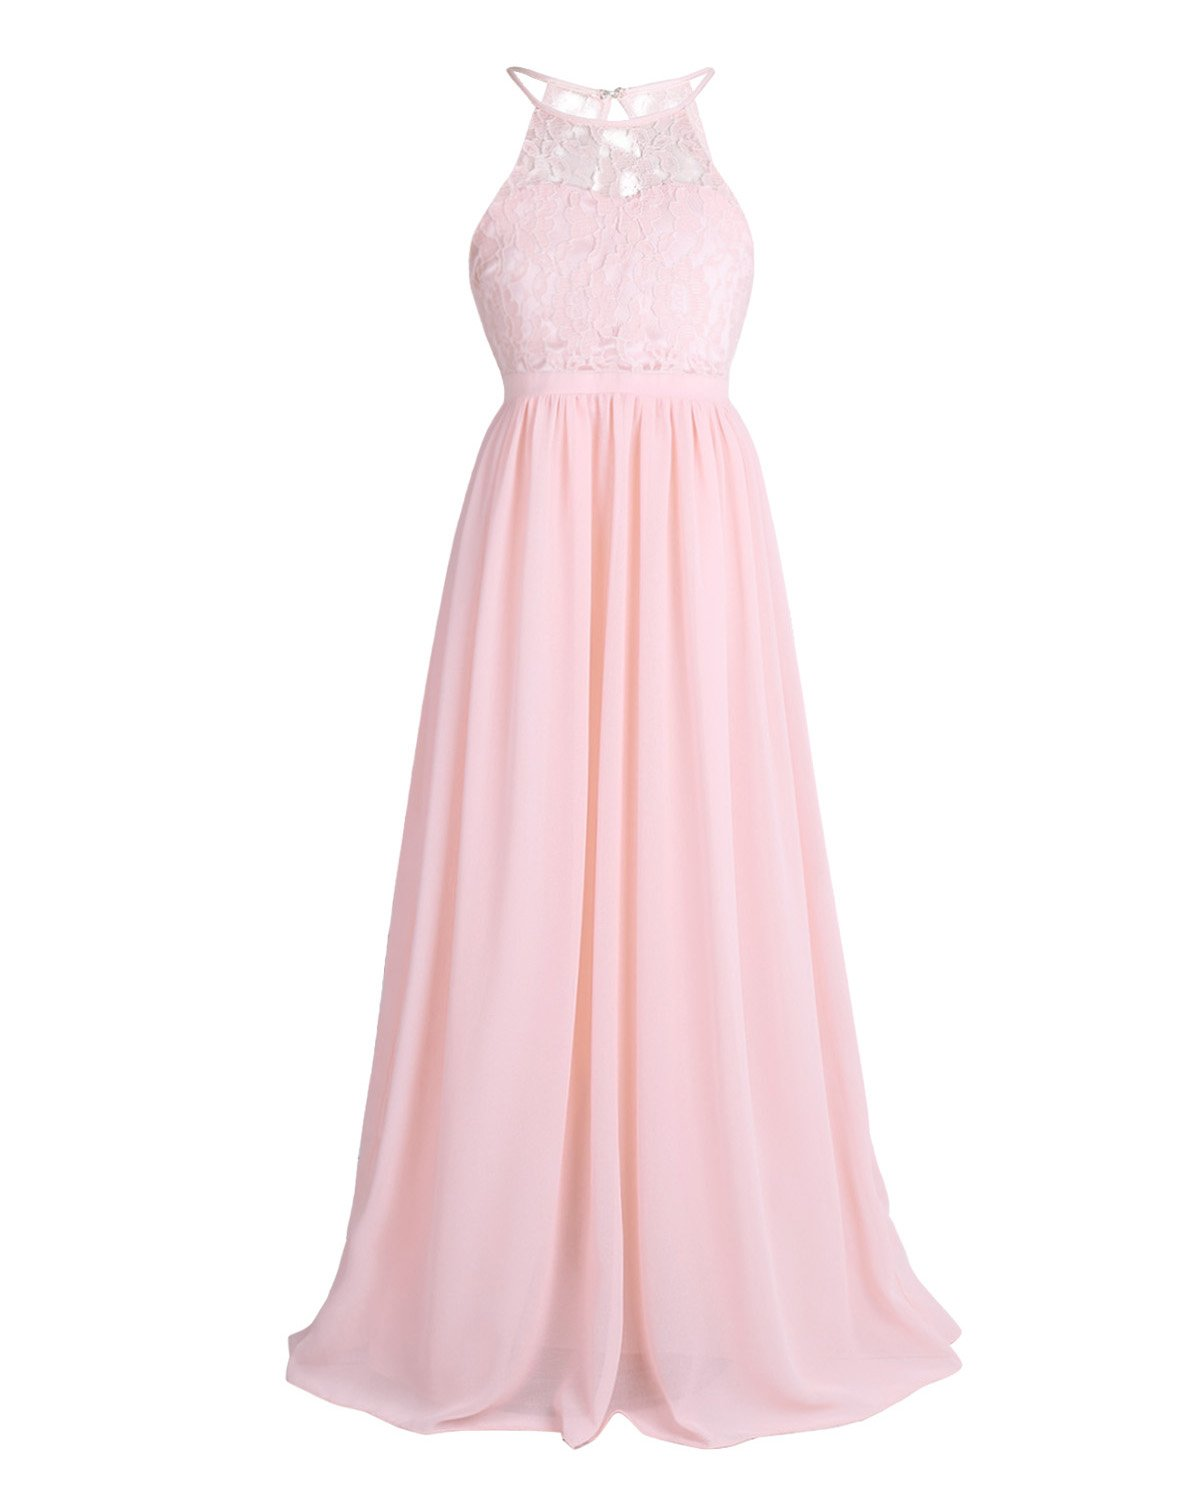 CHICTRY Kids Girls Halter Neck Chiffon Long Party Junior Wedding Evening Prom Maxi Gown Dress Pearl Pink 12